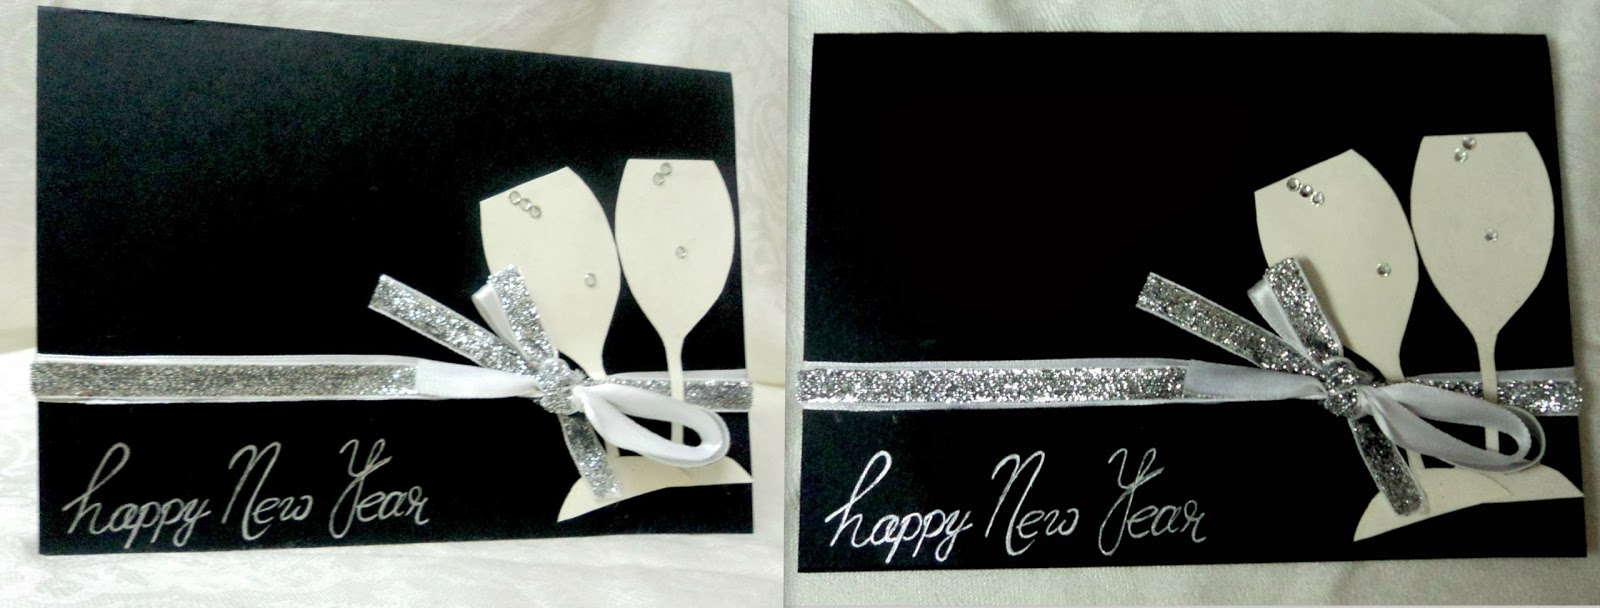 cheers to the new year with this classy new year card